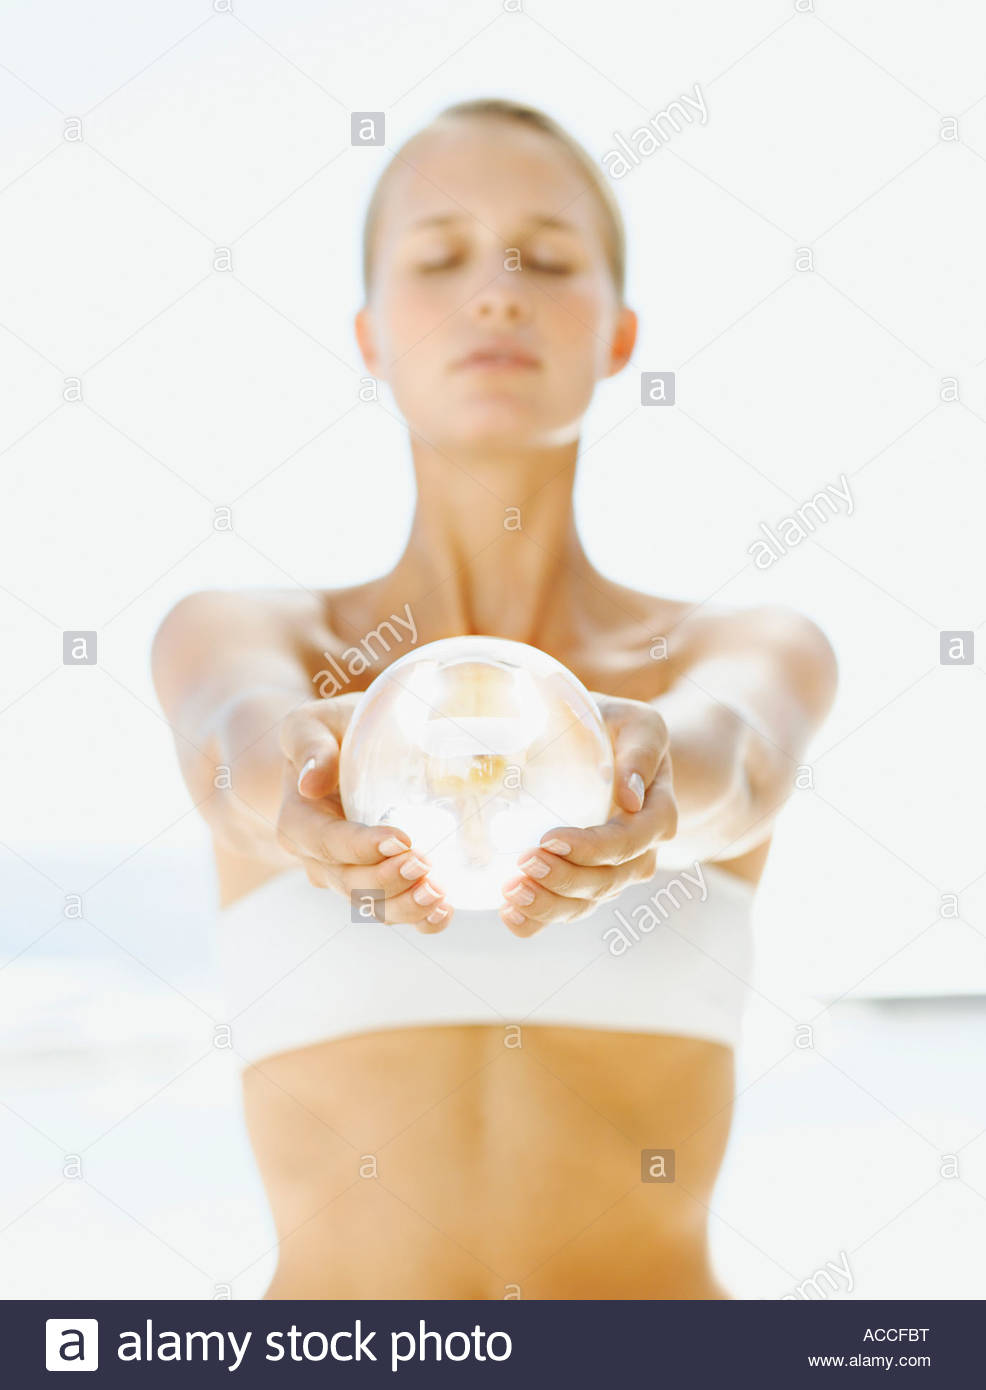 Woman holding an orb forth in her hands - Stock Image